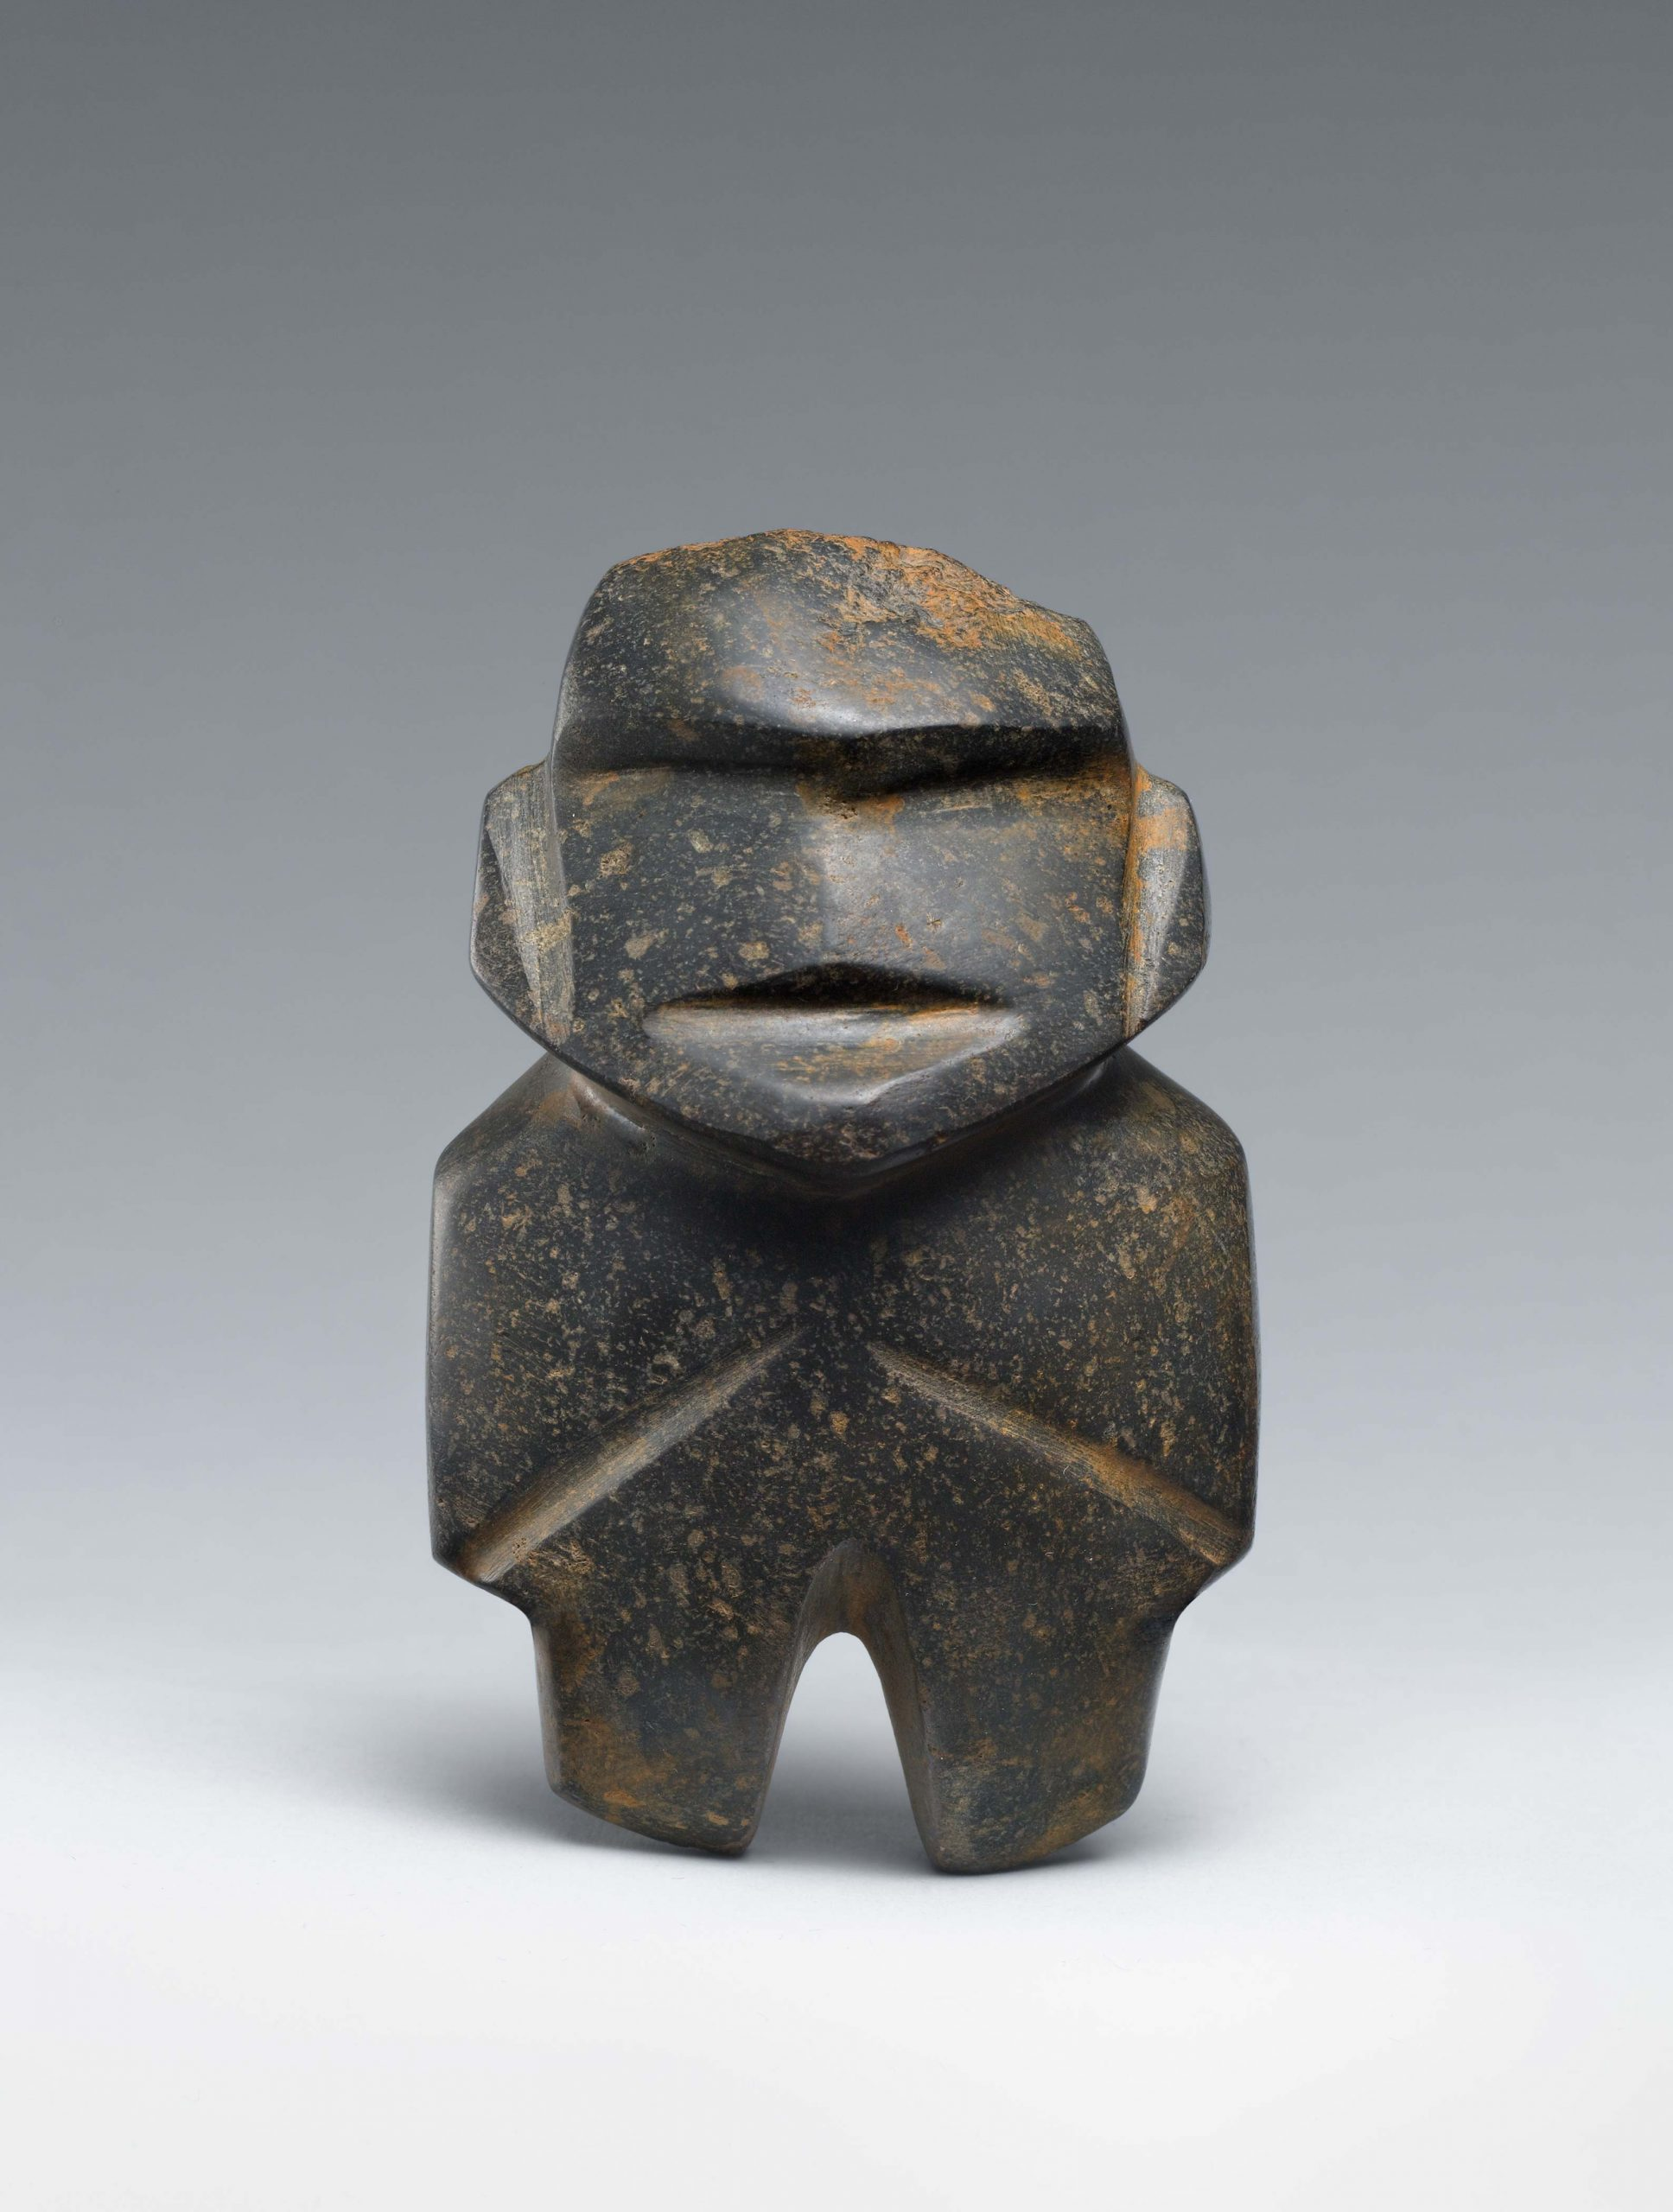 Abstract stone figure with vertical cuts to represent facial features, arms, legs, and prominent eyebrows.